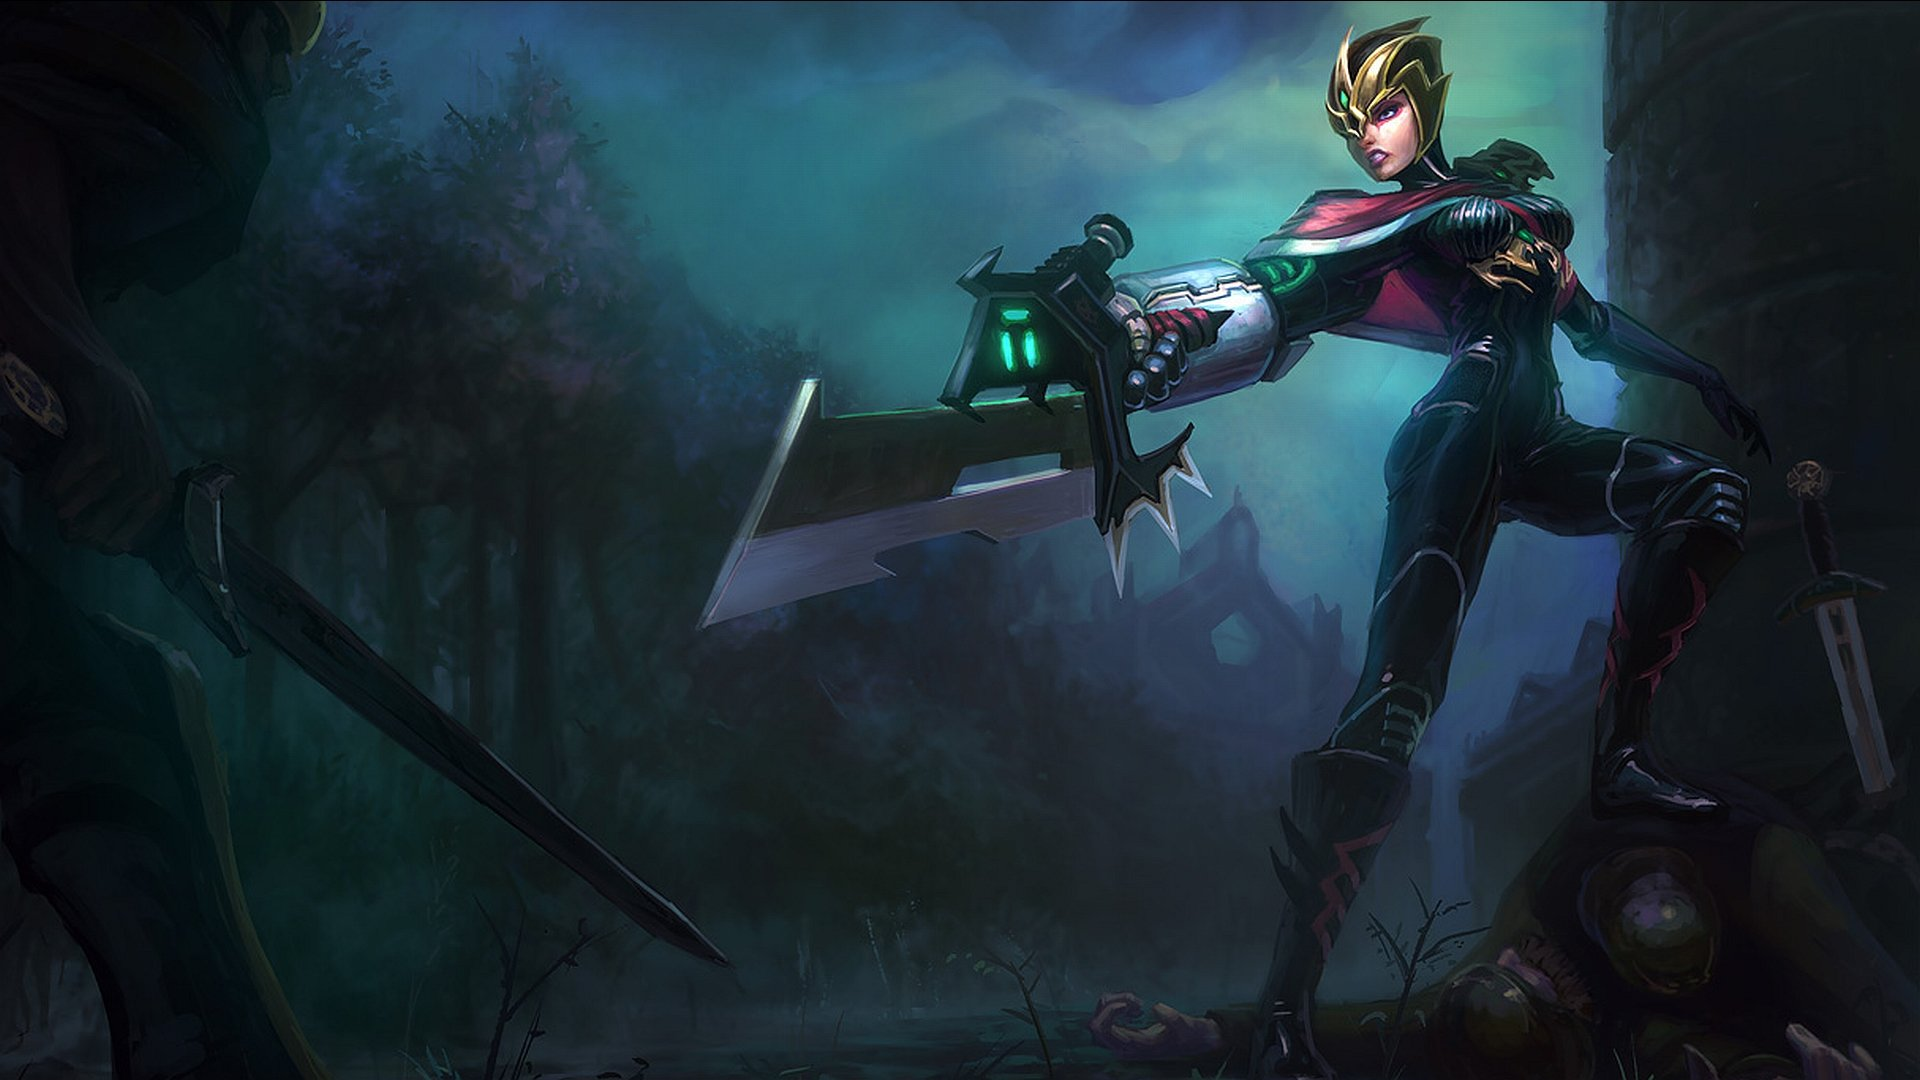 Awesome Riven League Of Legends Free Wallpaper ID173885 For Full Hd PC